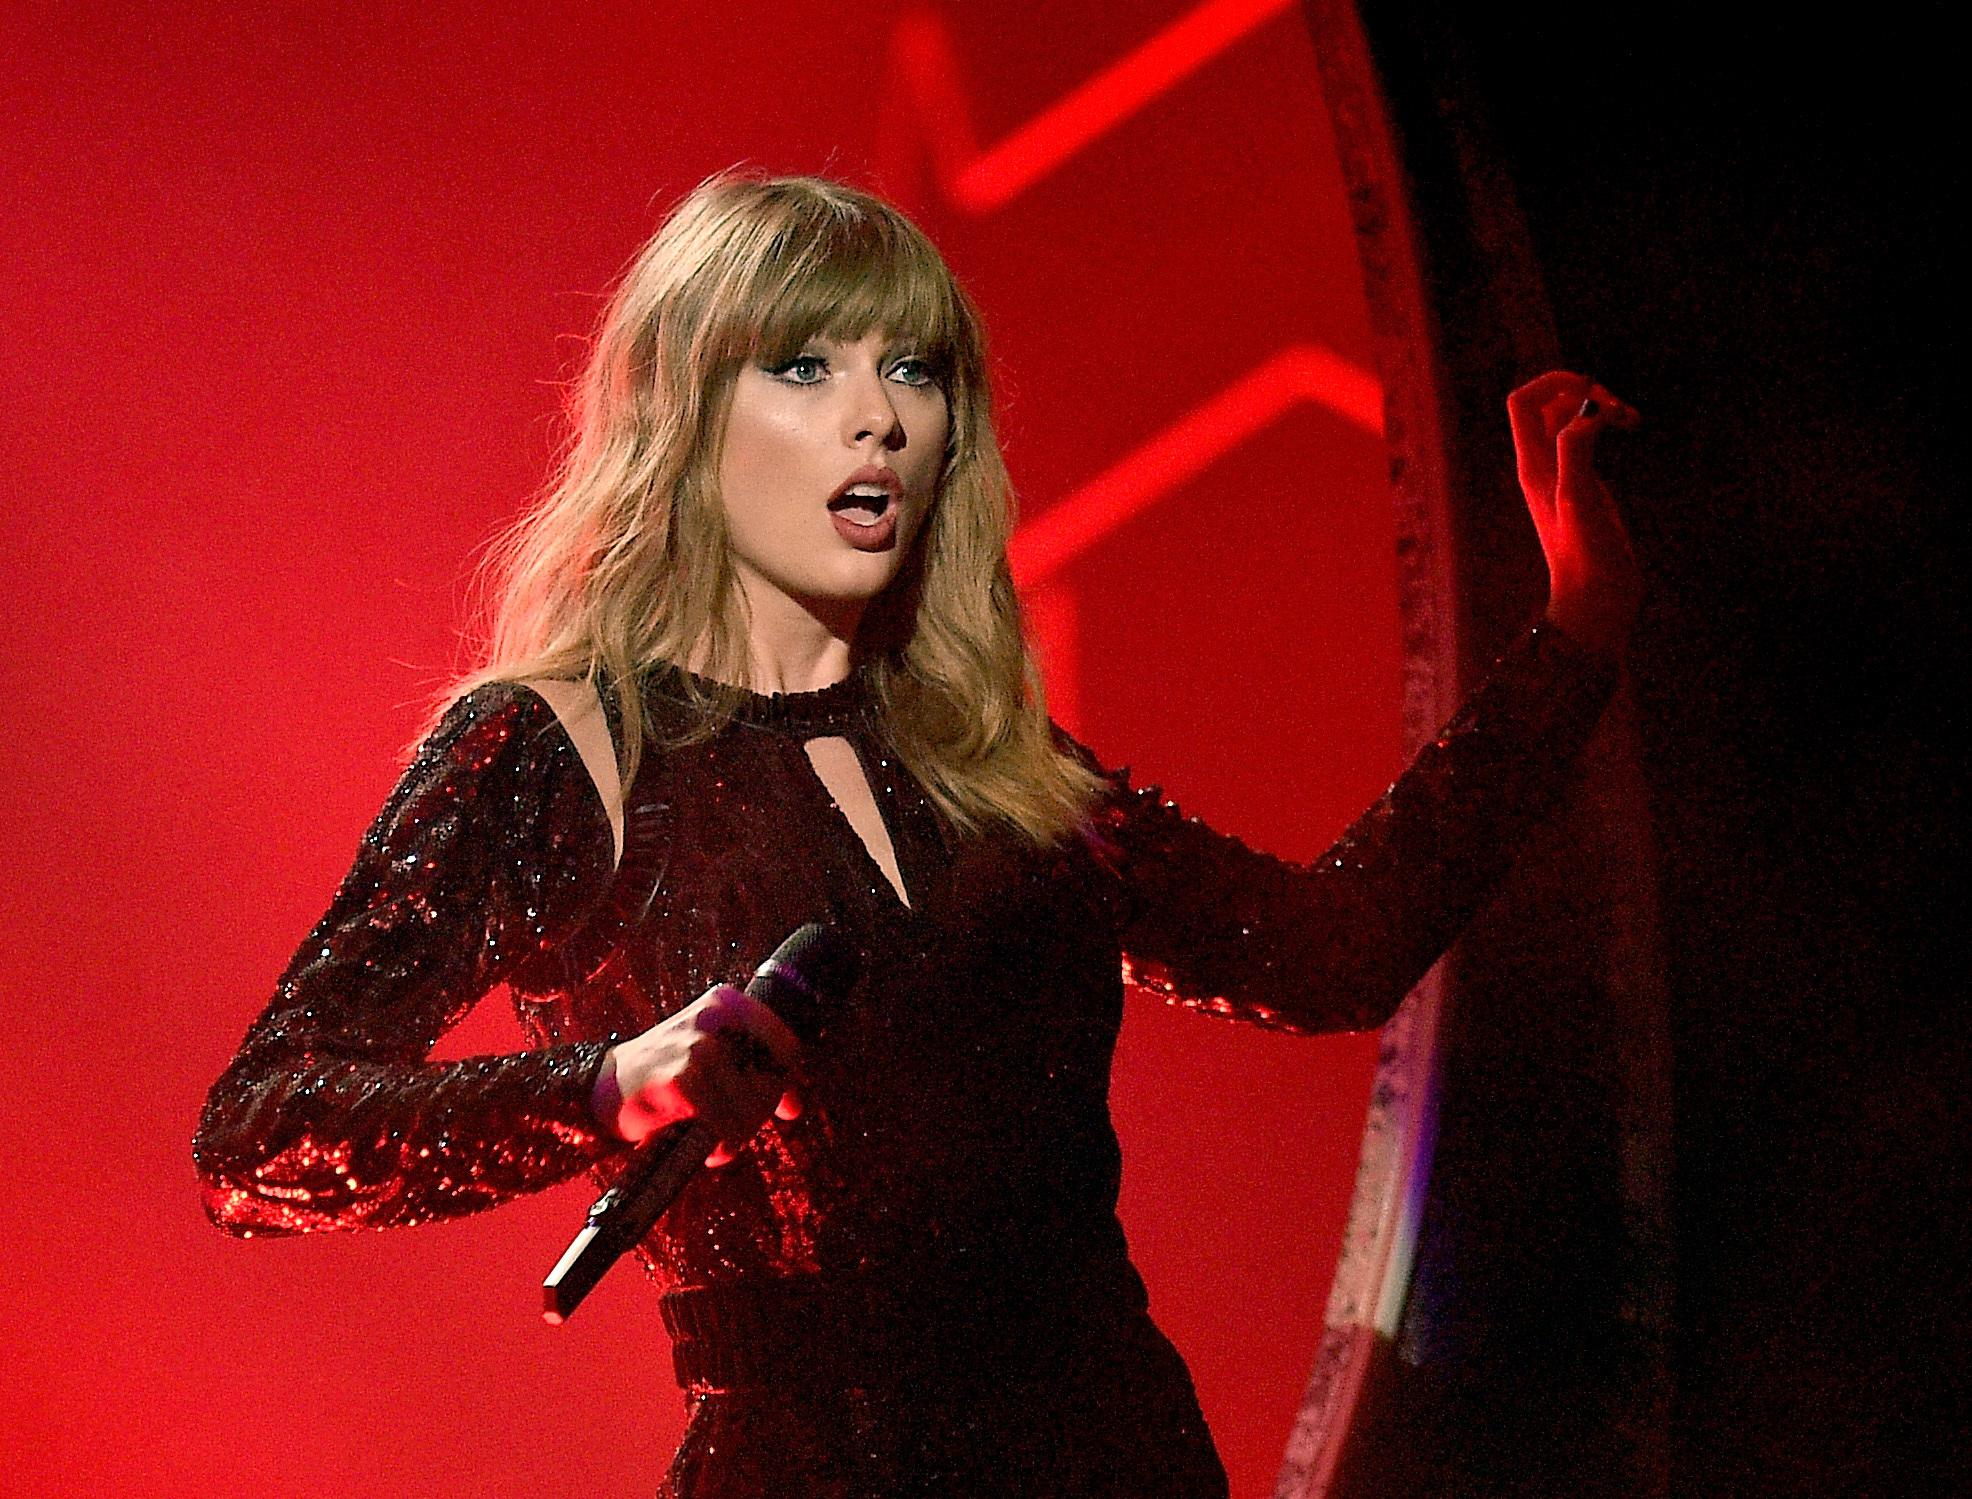 LOS ANGELES, CA - OCTOBER 09:  Taylor Swift performs onstage during the 2018 American Music Awards at Microsoft Theater on October 9, 2018 in Los Angeles, California.  (Photo by Kevork Djansezian/AMA2018/Getty Images For dcp )